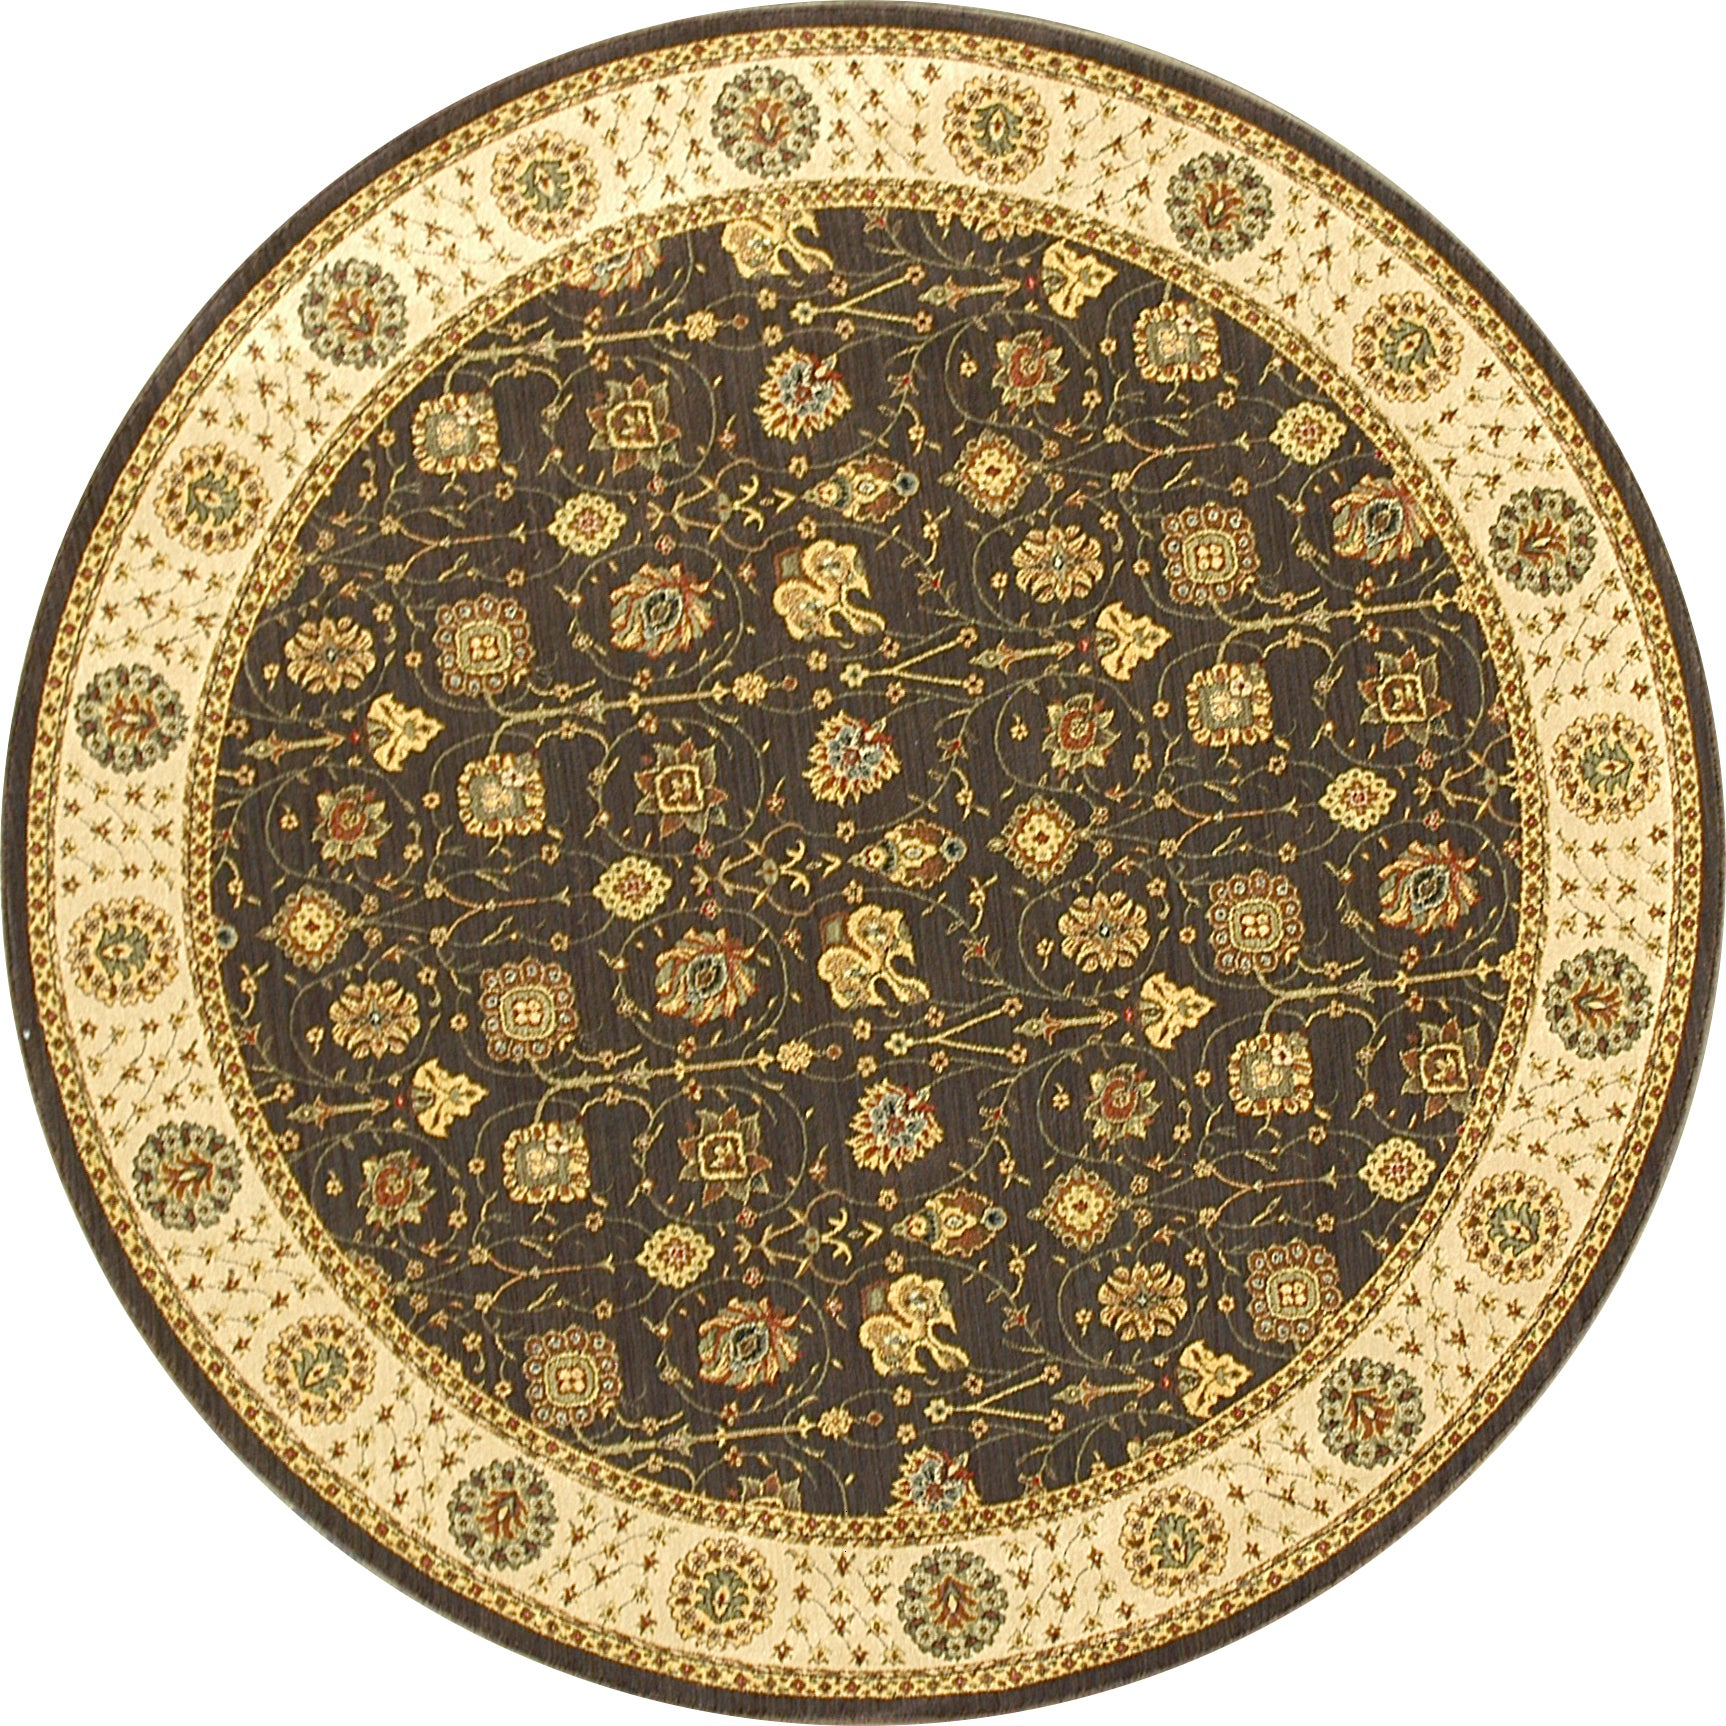 Alexander Home Dorchester Expresso/ Beige Round Powerloomed Rug (5' x 2') at Sears.com